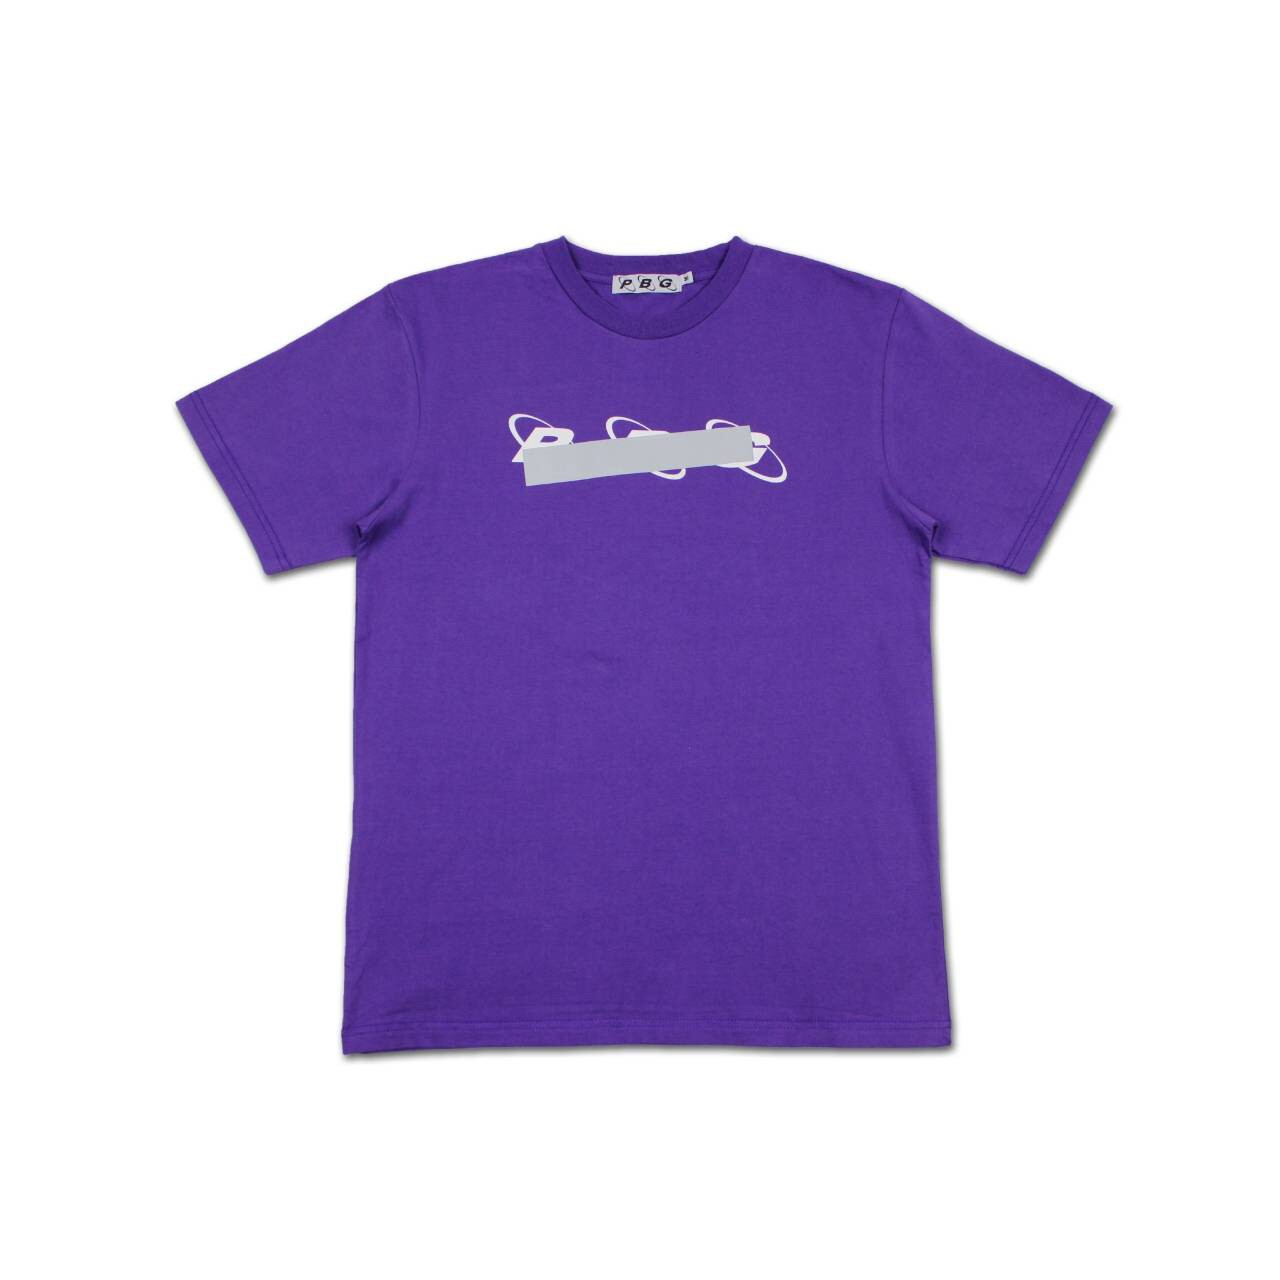 PRETTYBOYGEAR REFLECT TEE PURPLE